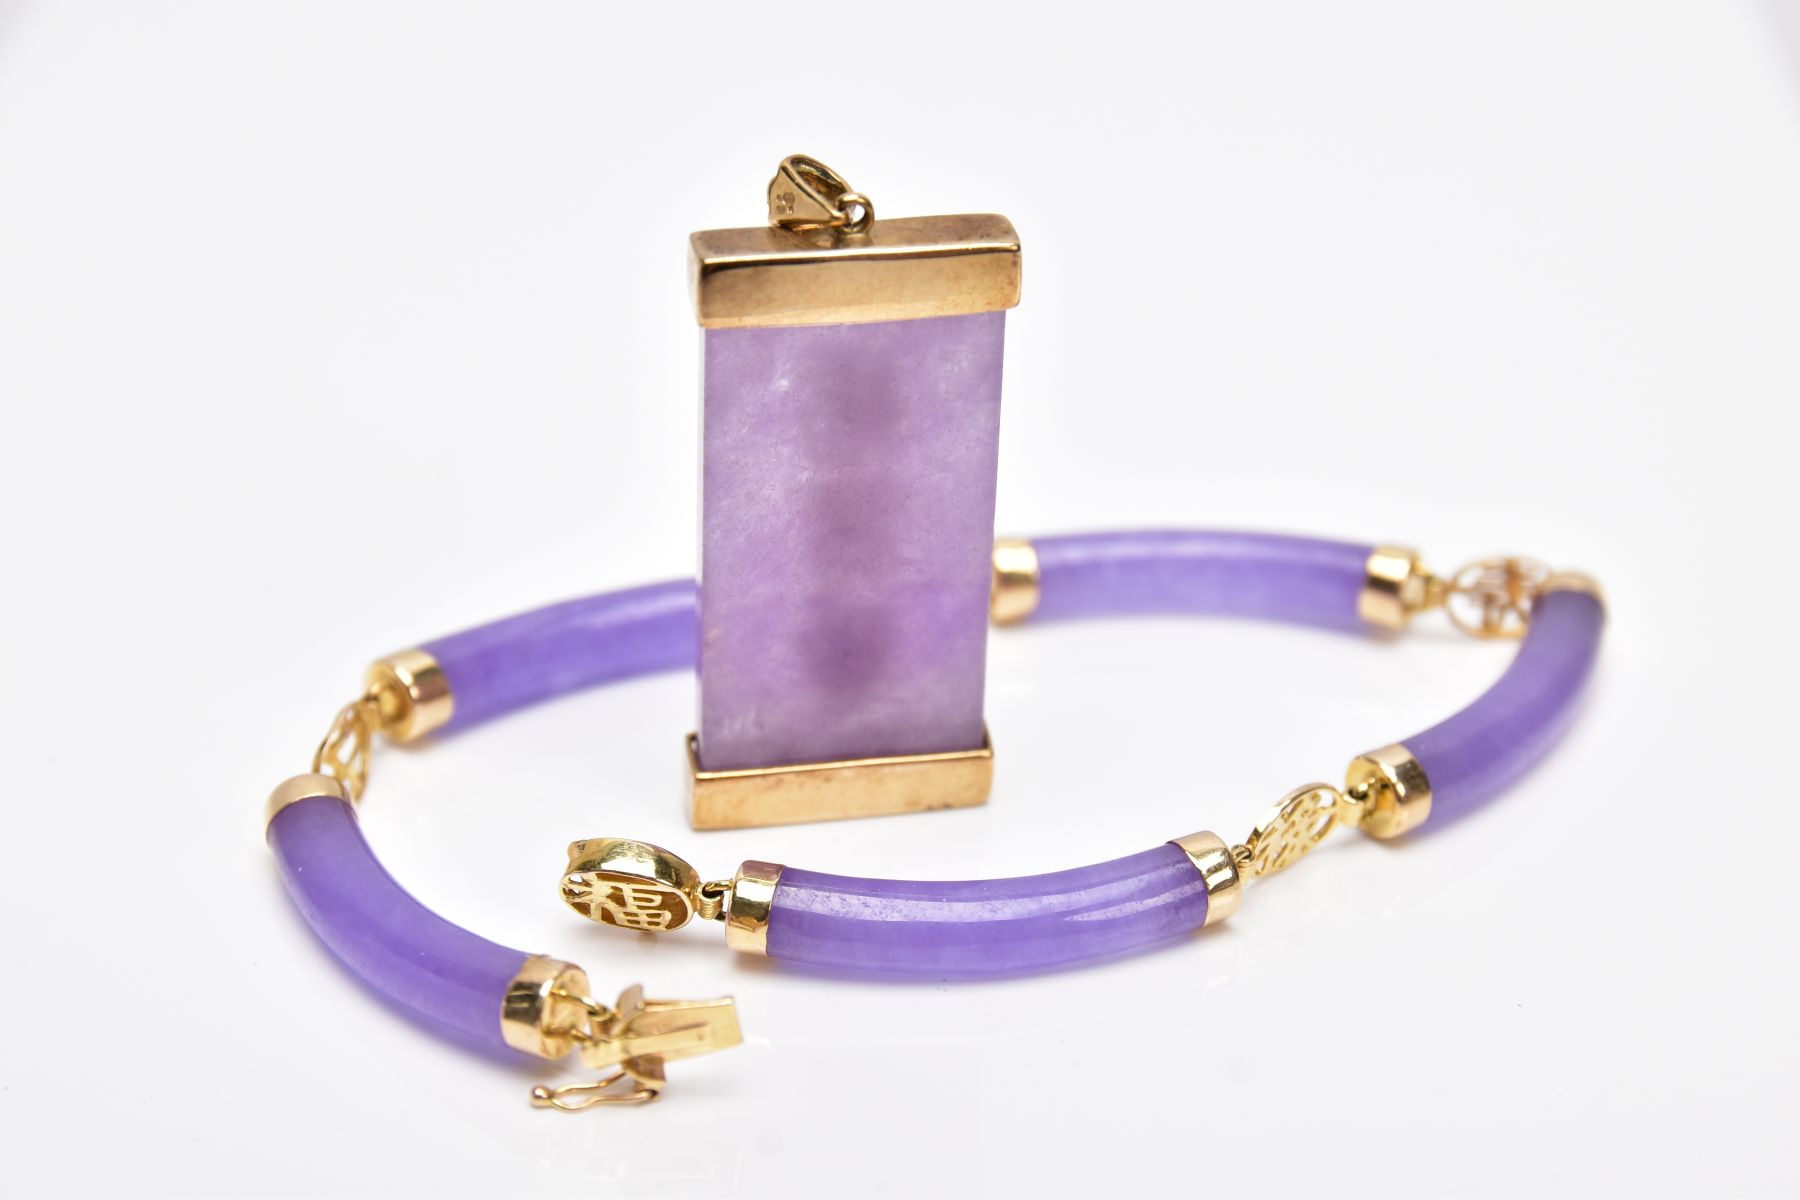 A 14CT GOLD LAVENDER JADE BRACELET AND A 9CT GOLD LAVENDER JADE PENDANT, the bracelet designed - Image 3 of 4